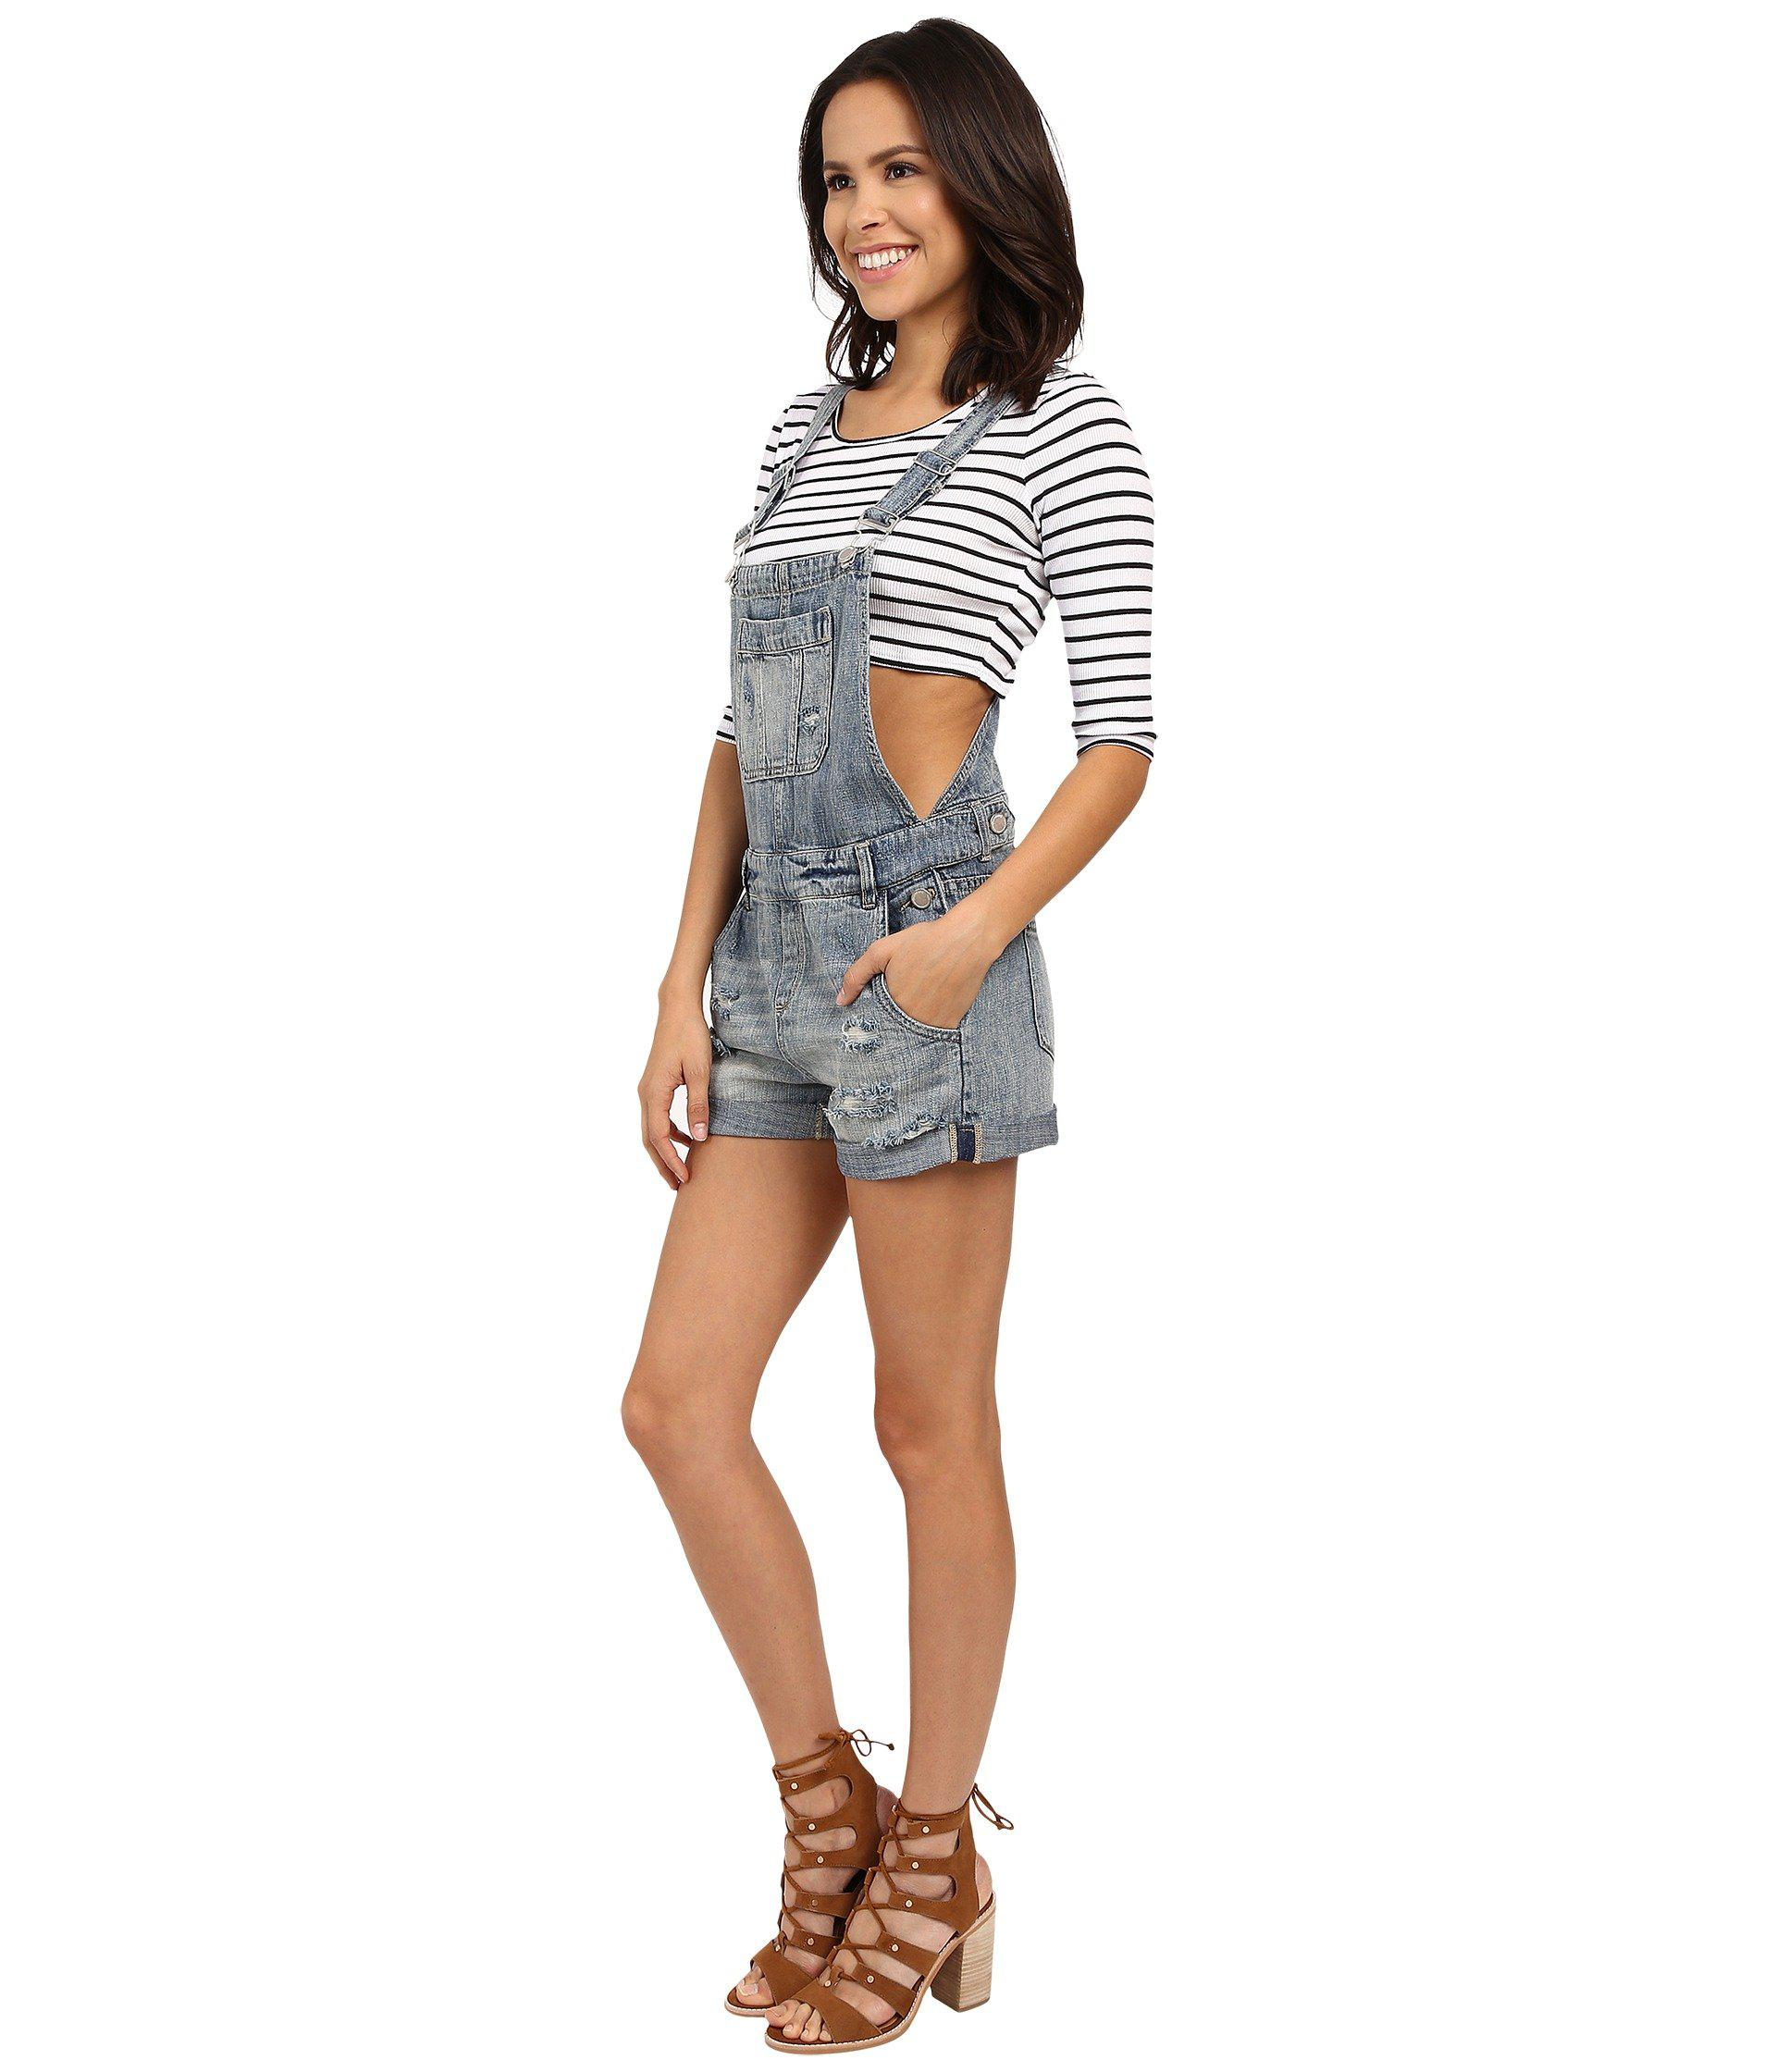 24d7cc0efe Lyst - Blank NYC Denim Short Overalls in Blue - Save 42%